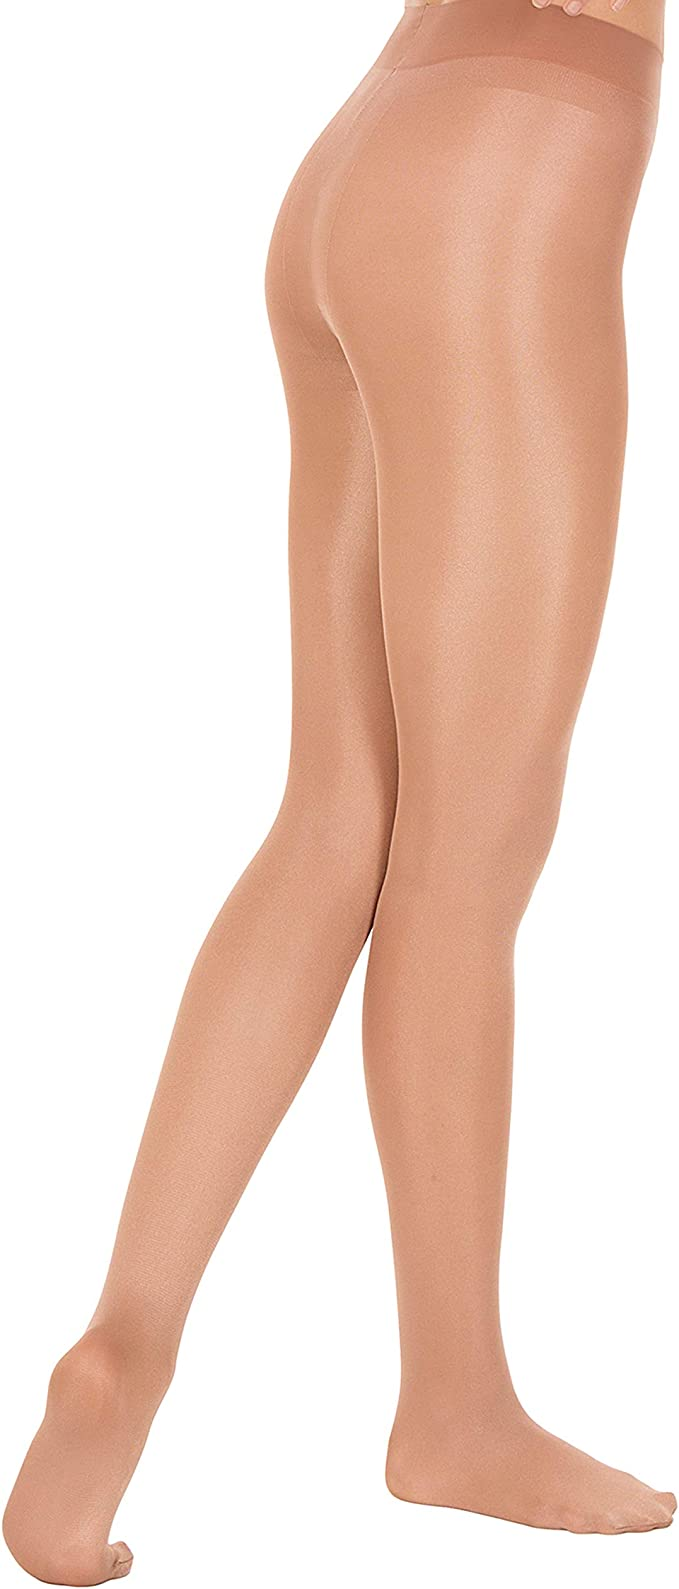 Body Wrappers Childrens shiny Footed Dance Tights Size M 8-10  White New